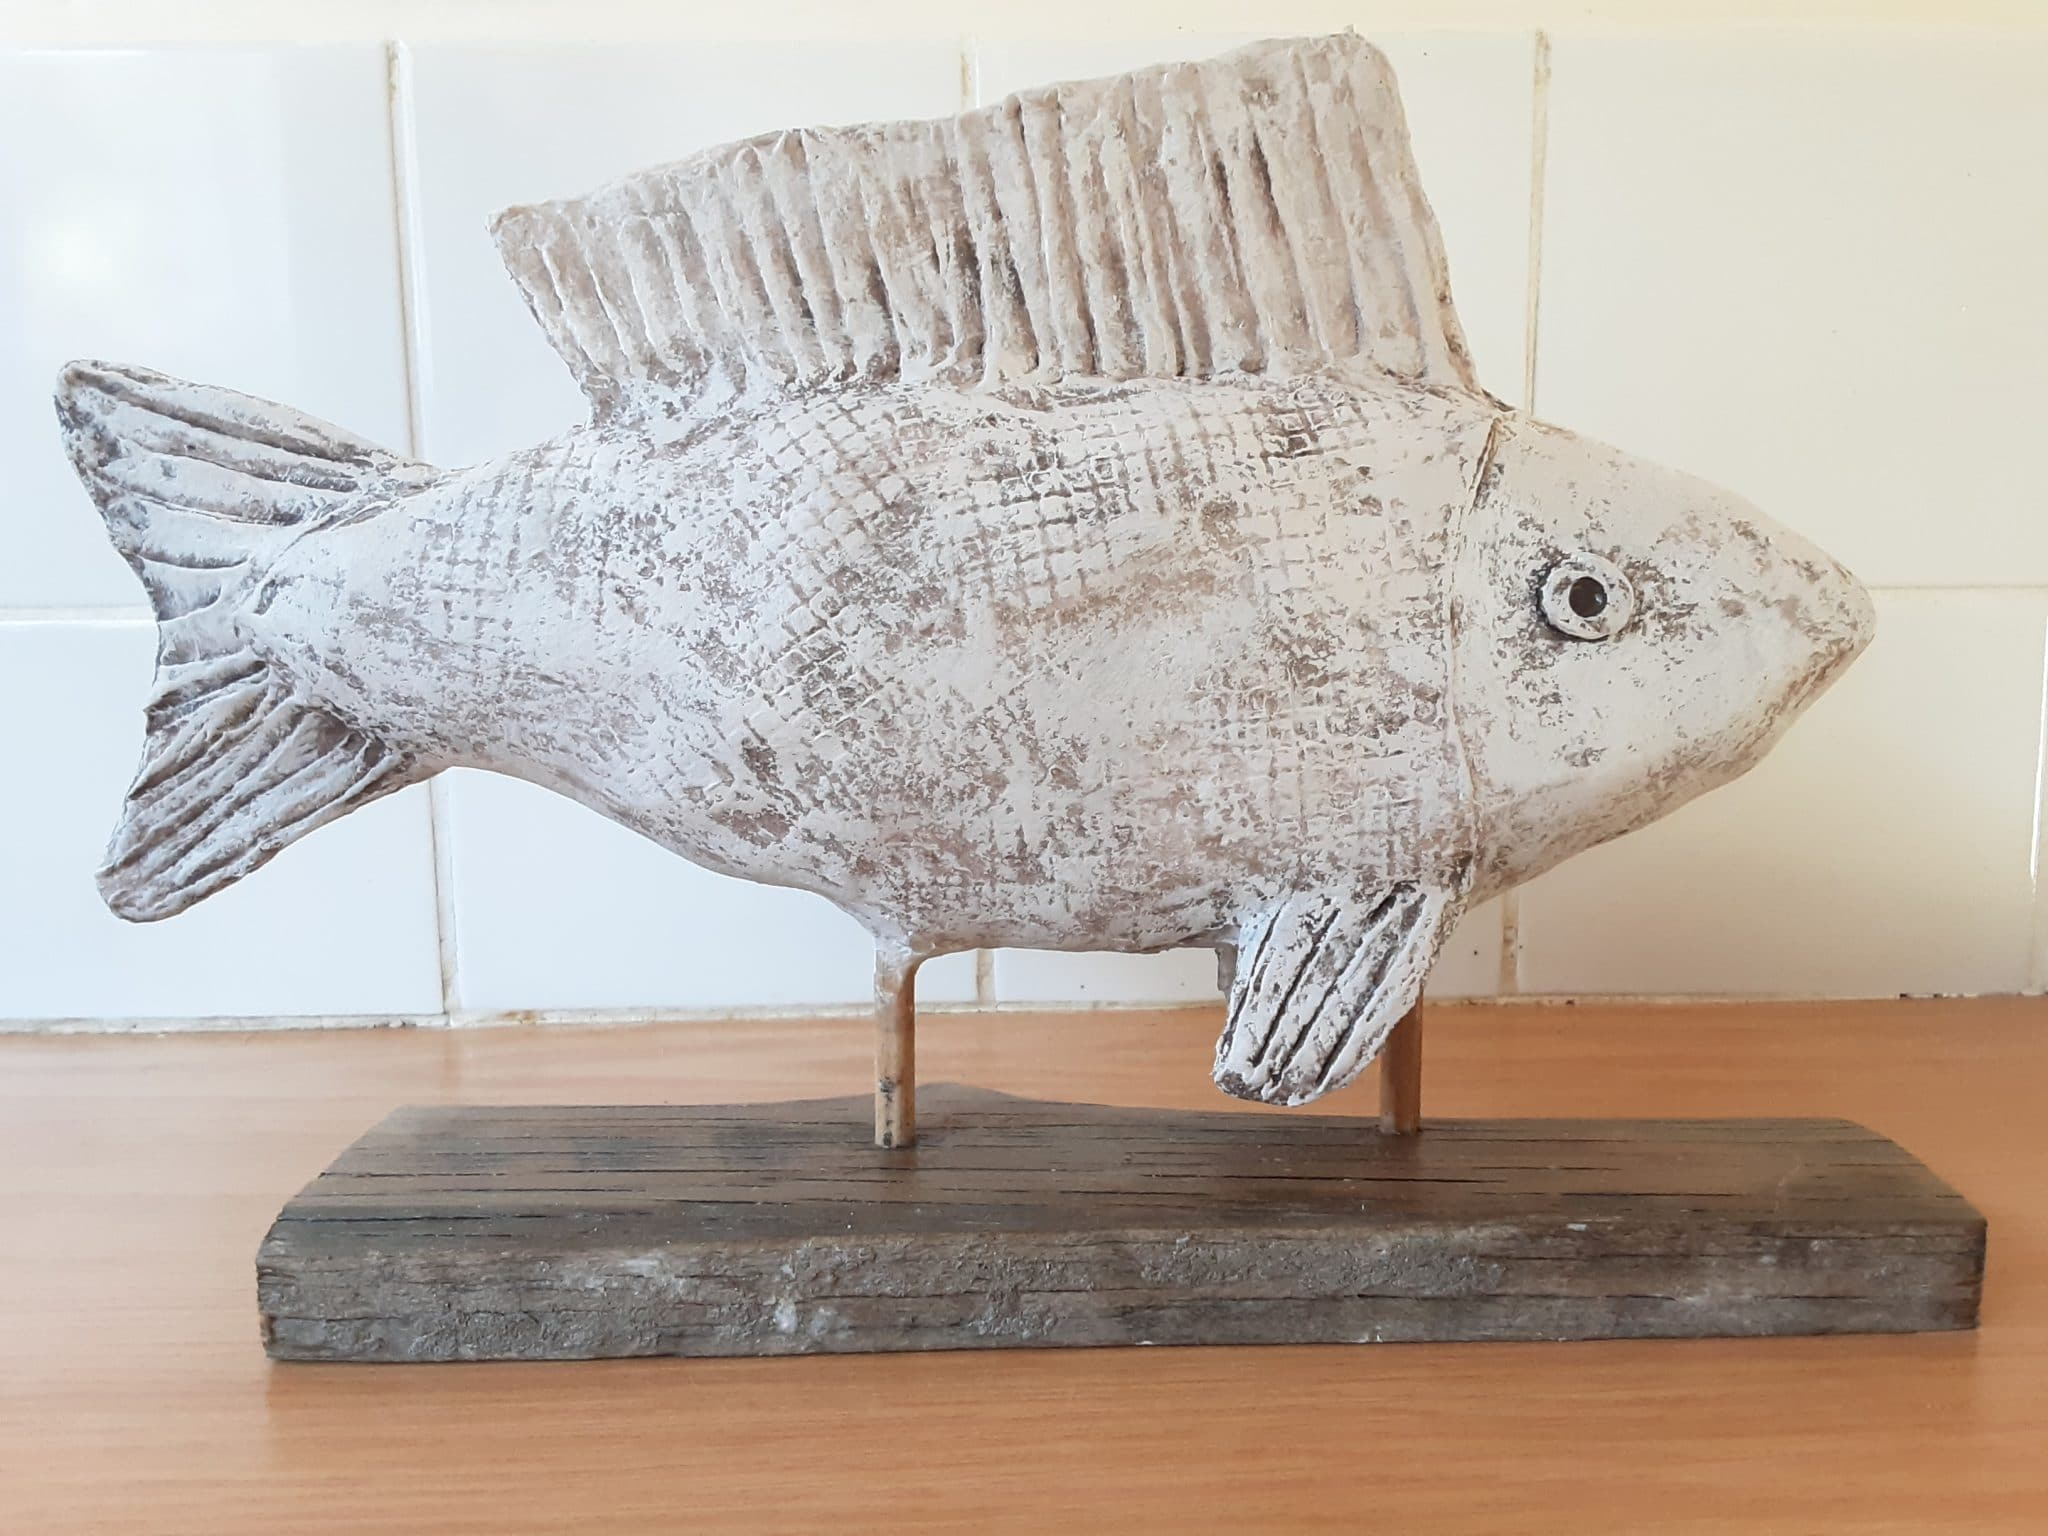 Fish Sculpture made with Air Dry Clay